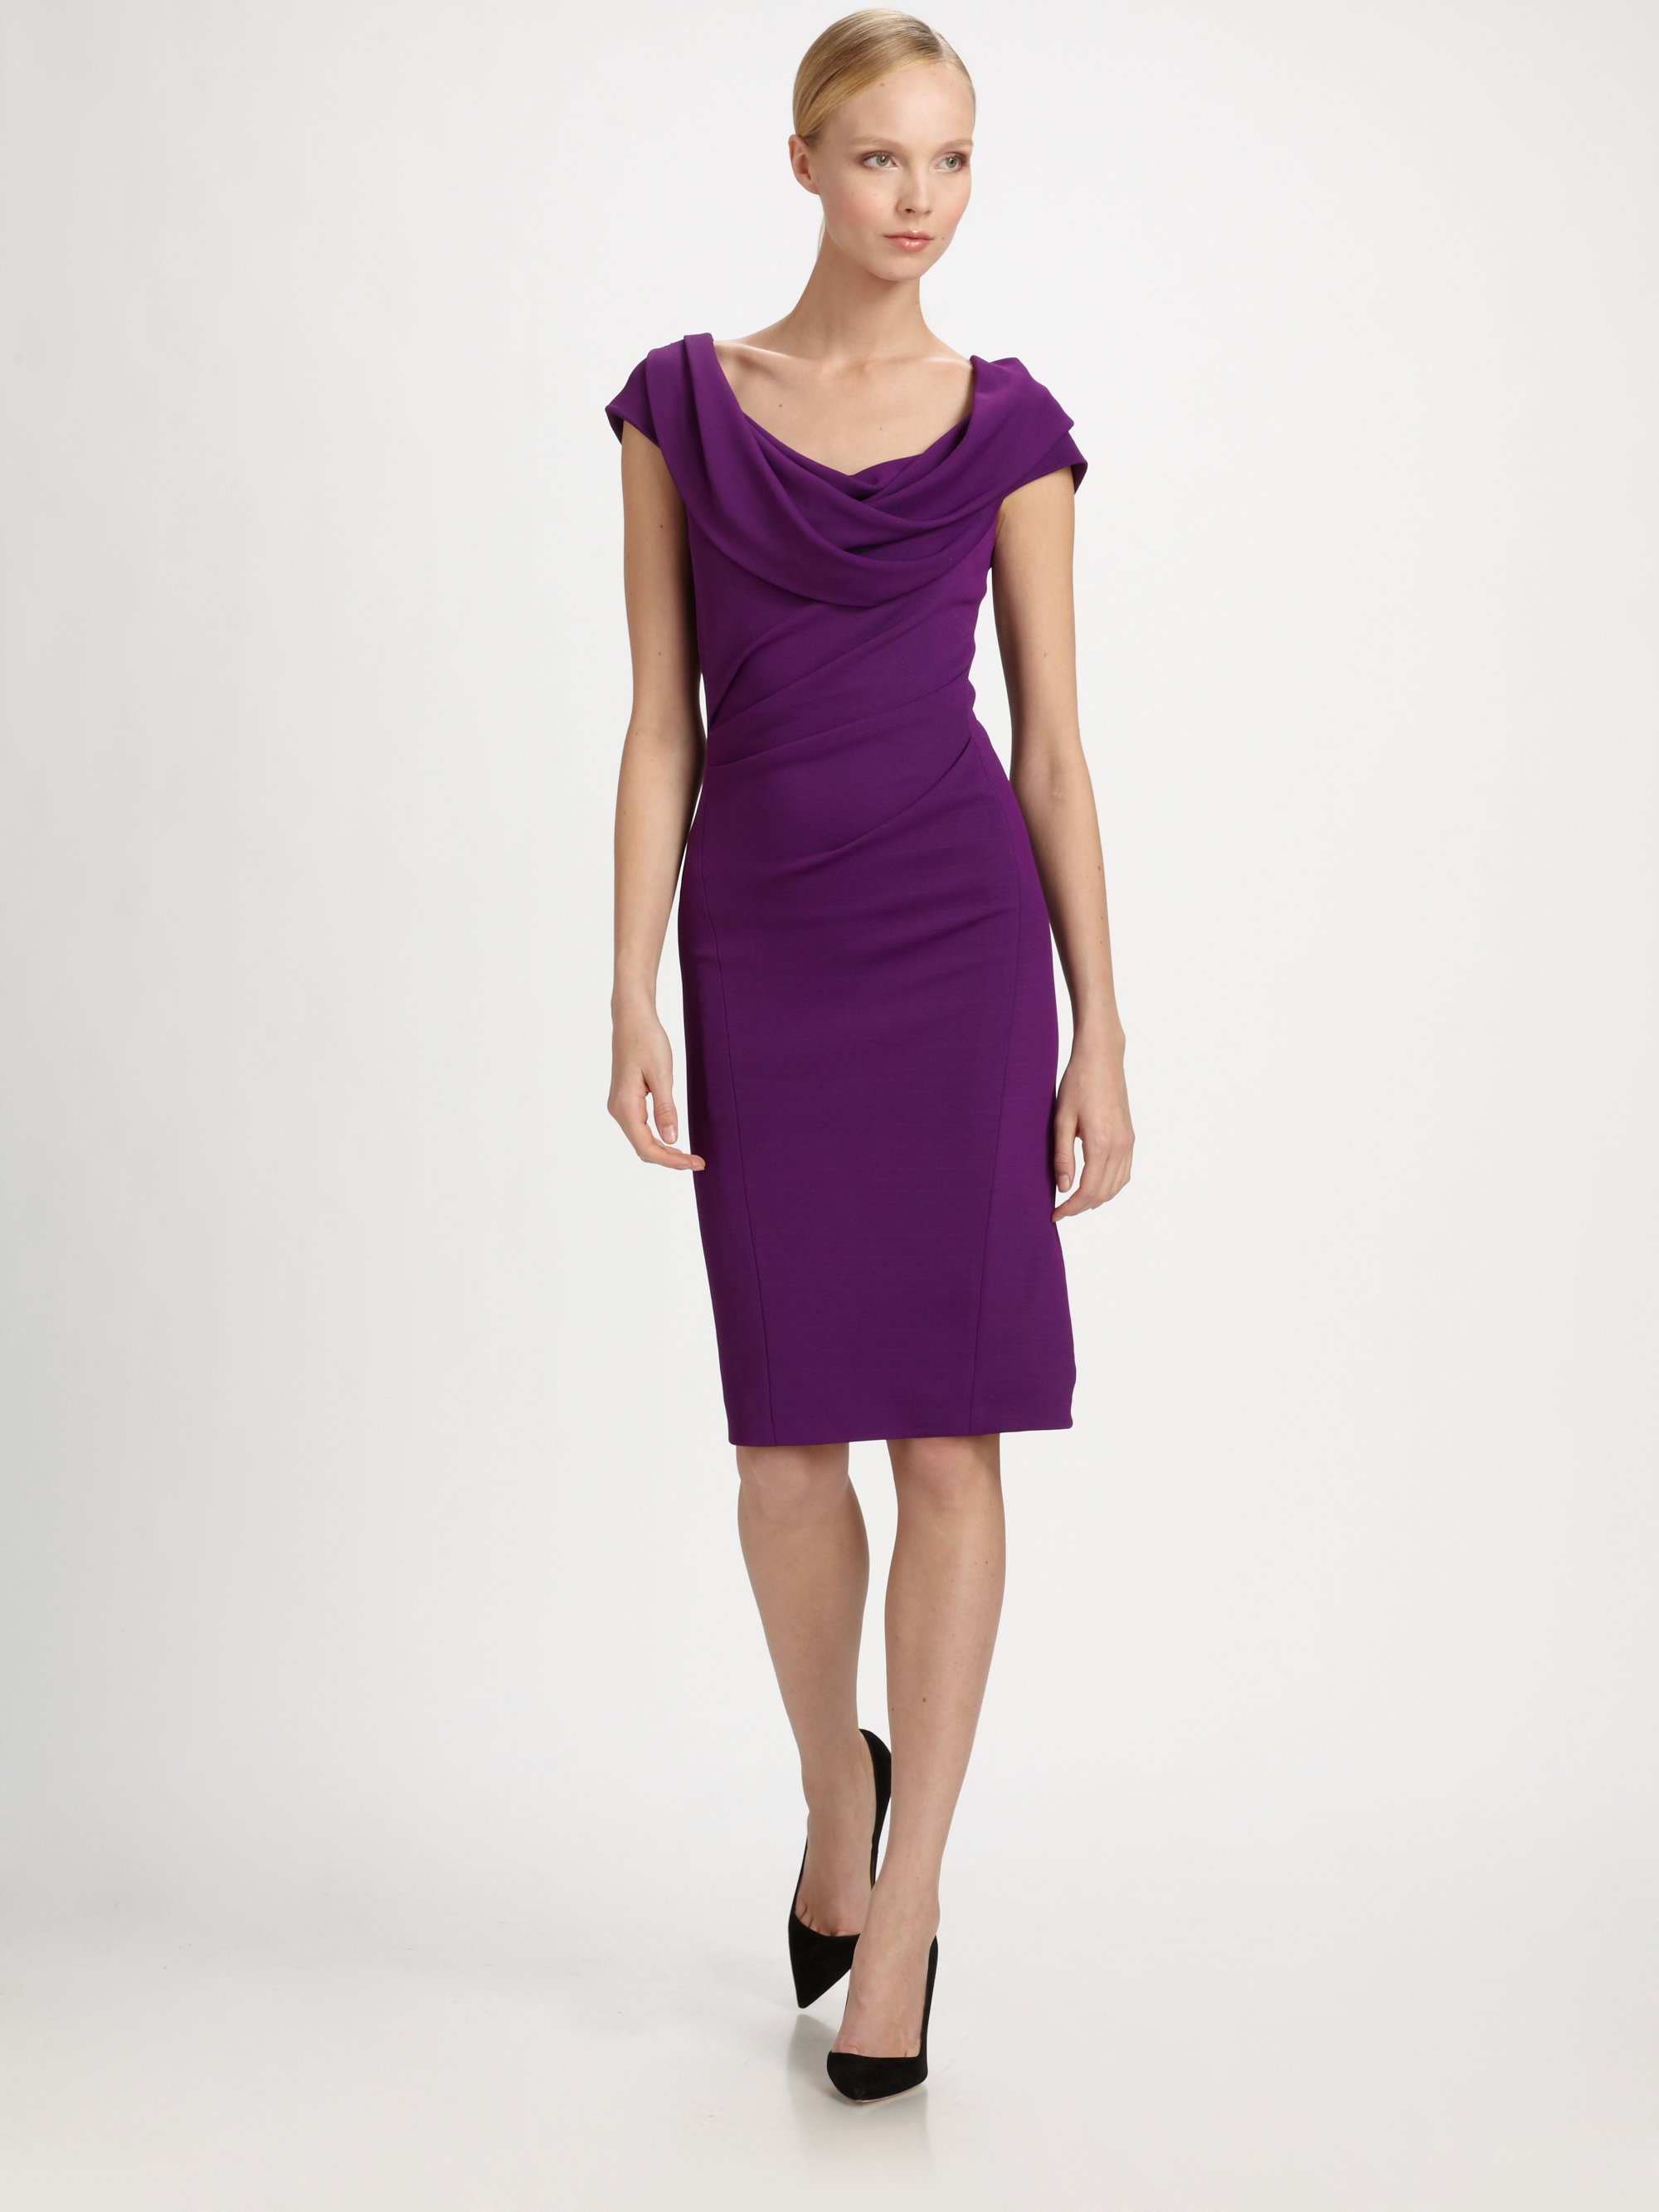 Donna karan new york cowl dress in purple violet lyst for Donna karen new york